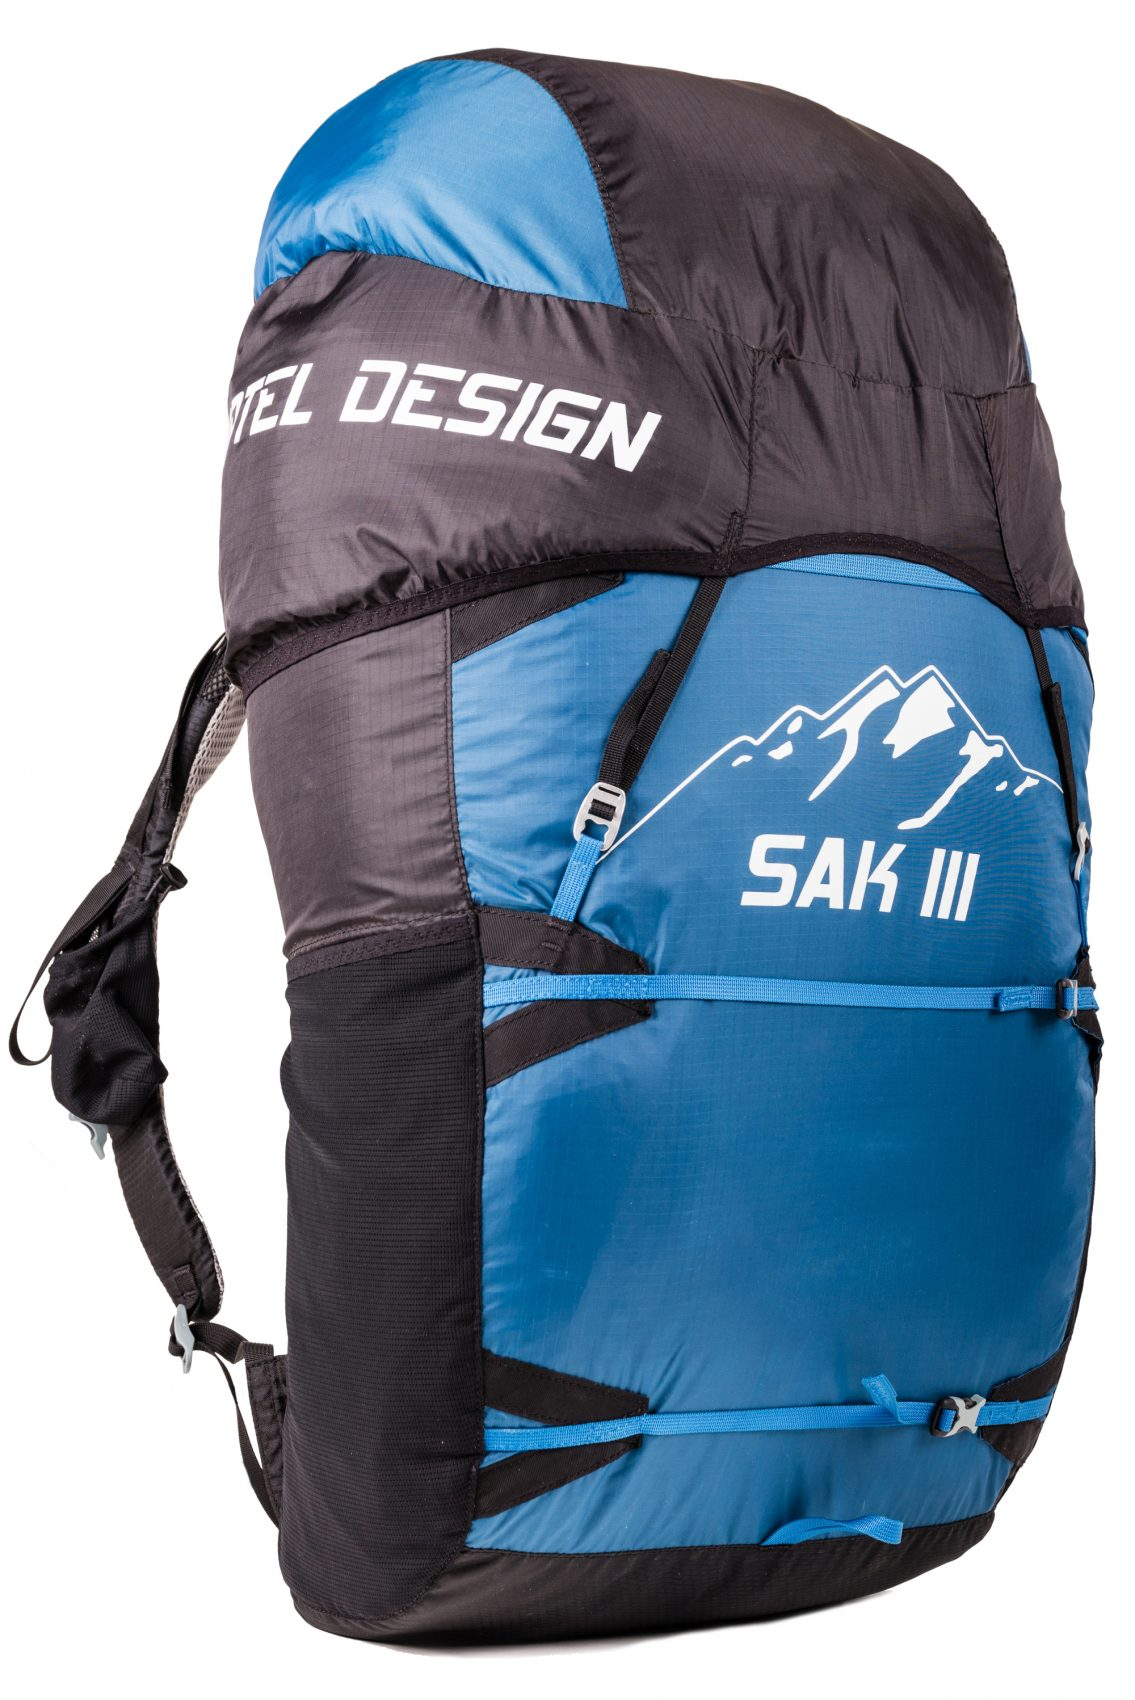 Sac airbag reversible optionnel